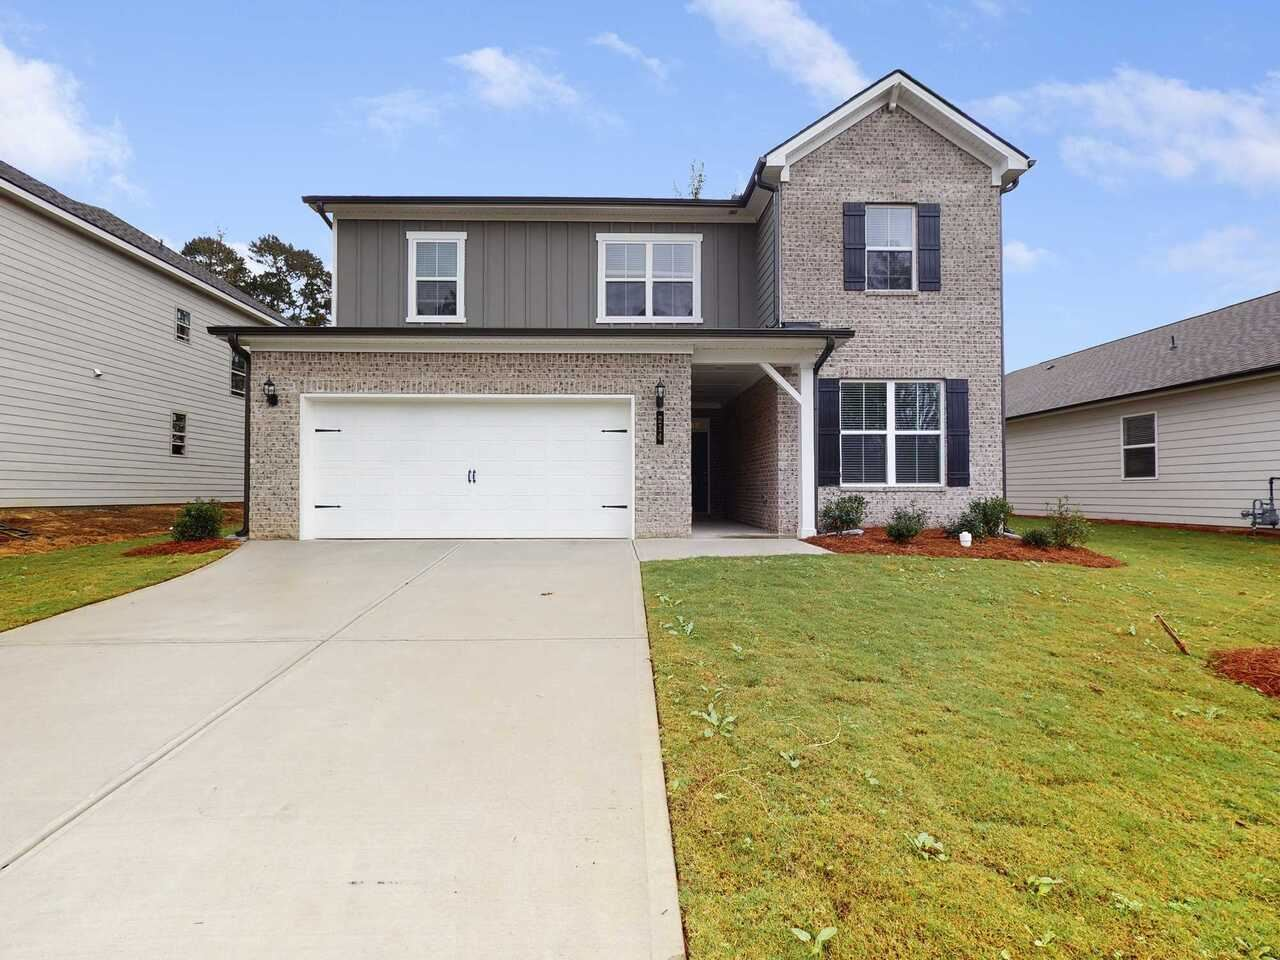 240 Birdie Cir, Fairburn, GA 30213 - #: 8913856